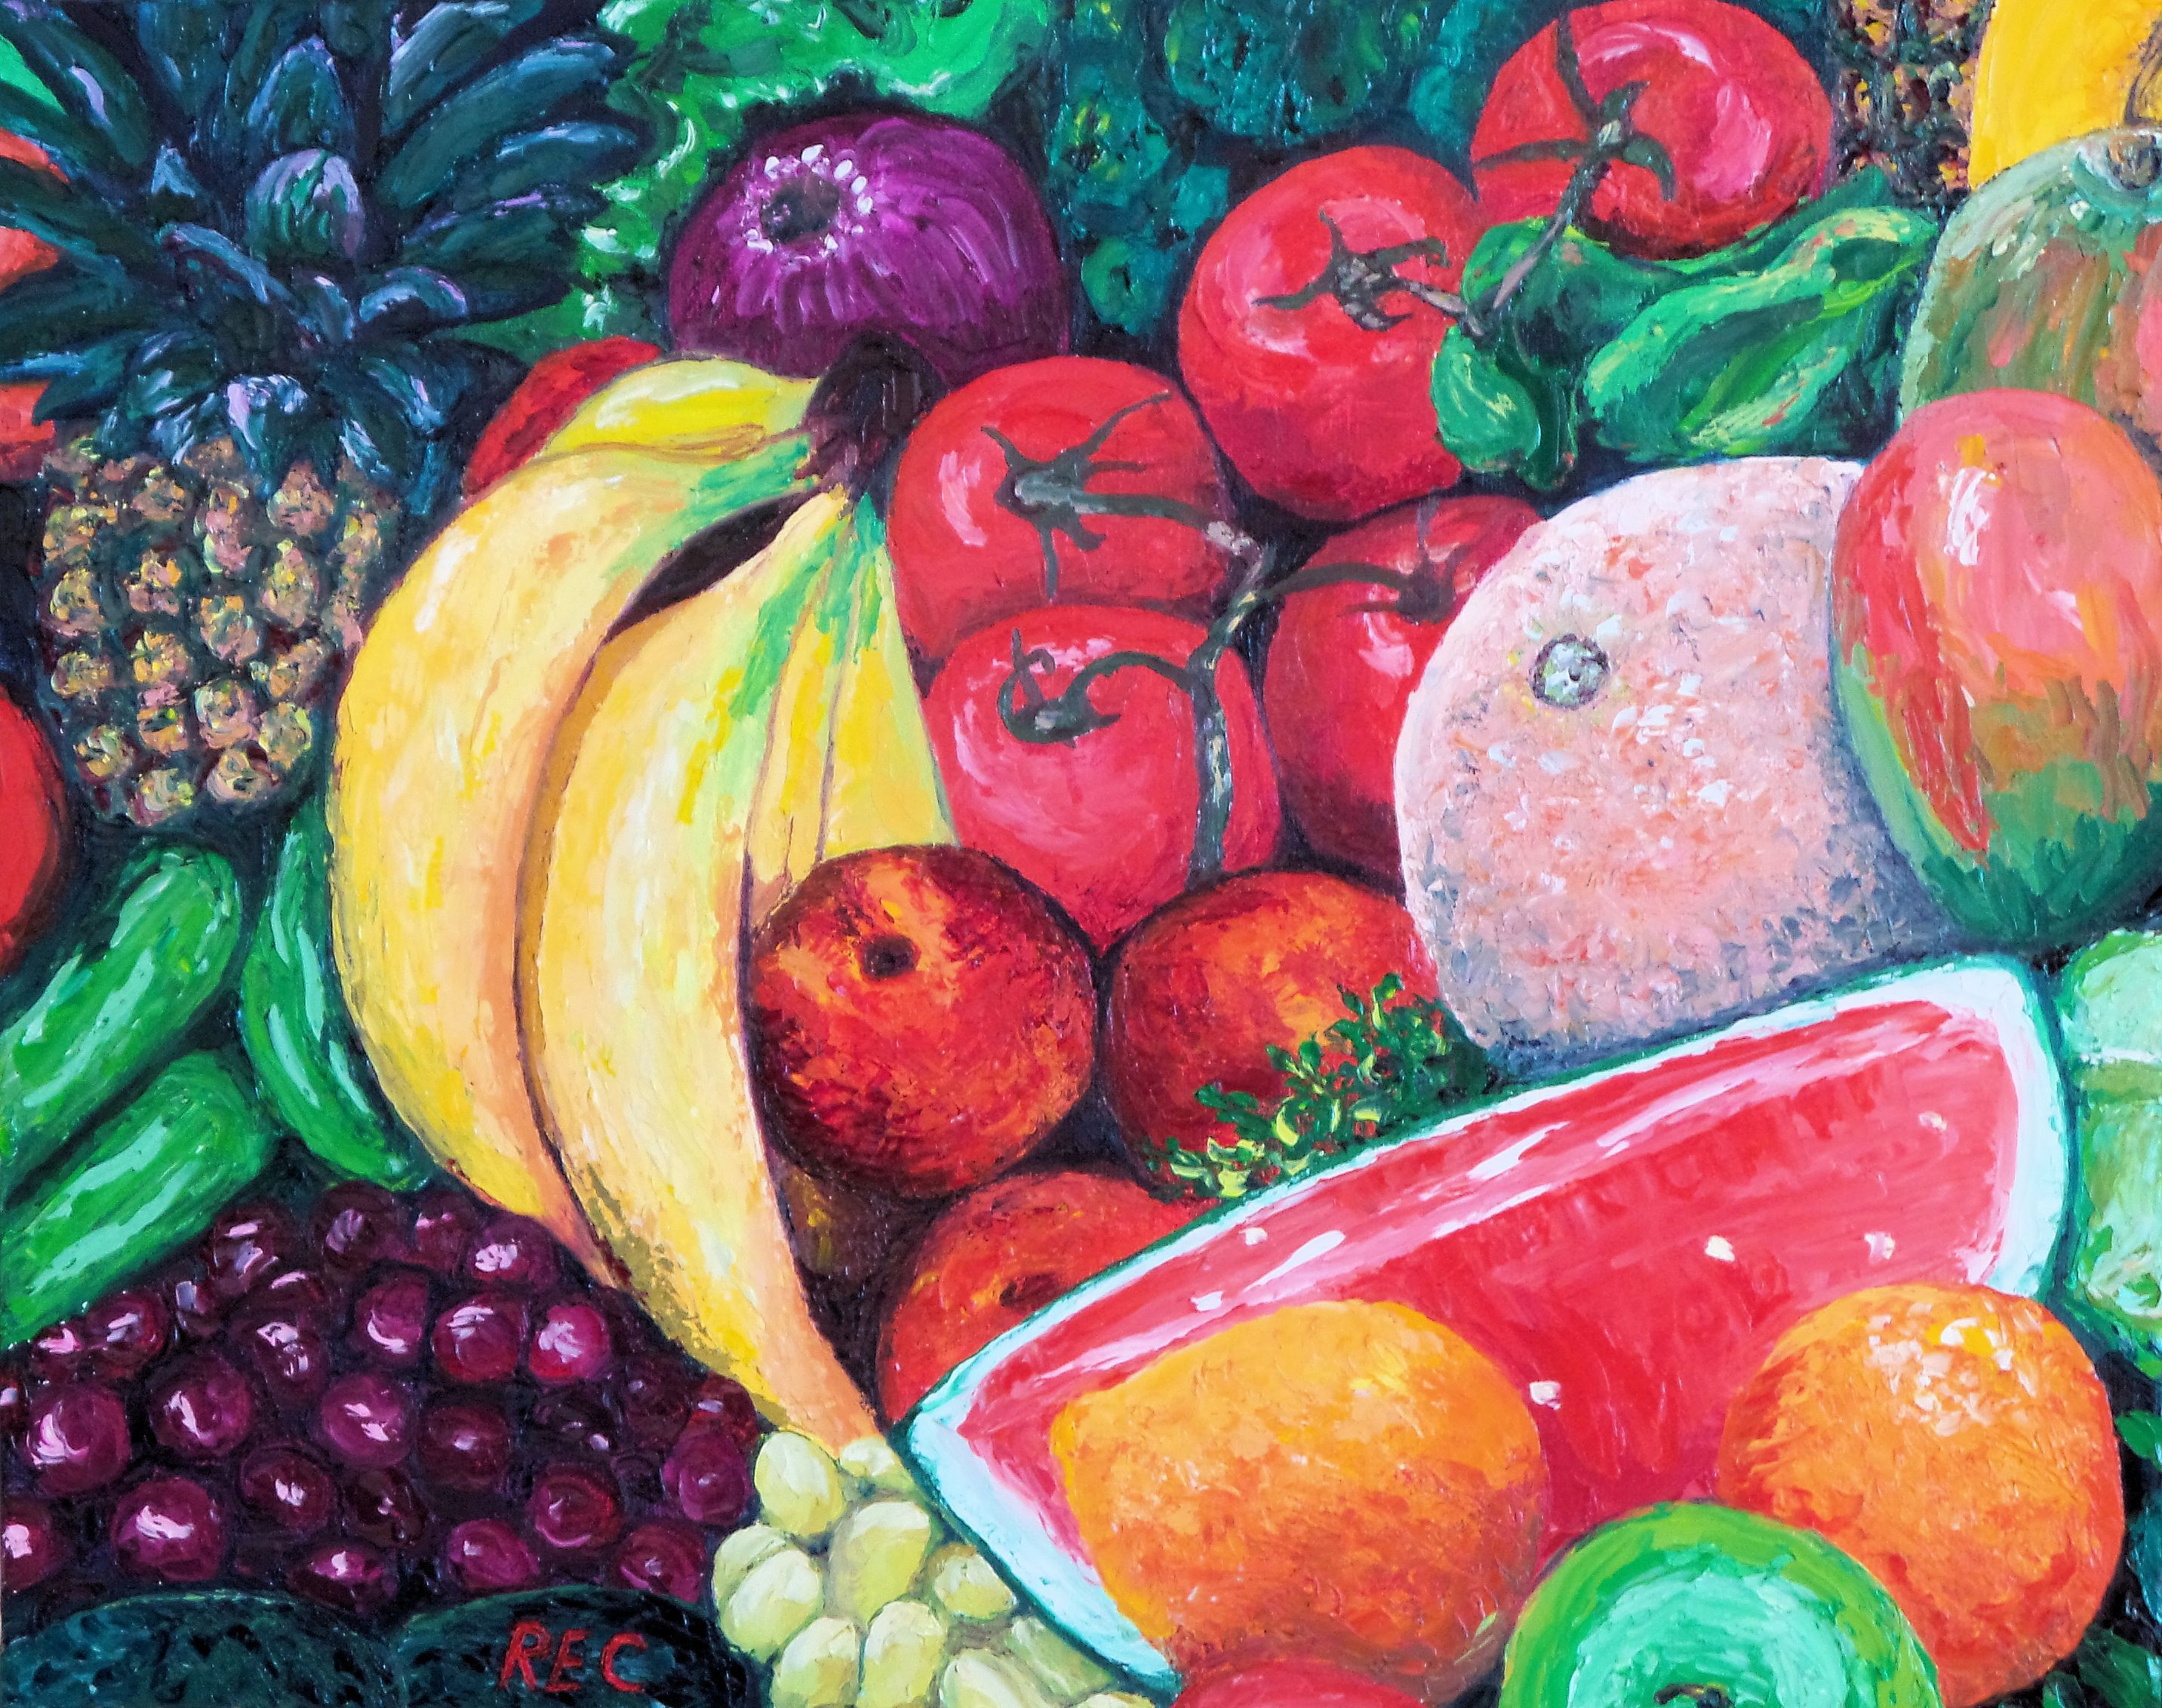 Felix murillo lleno de colores painting acrylic artwork fish art - Rossana Currie Artwork Another Bunch Of Fruits 2015 Oil Painting Abstract Figurative